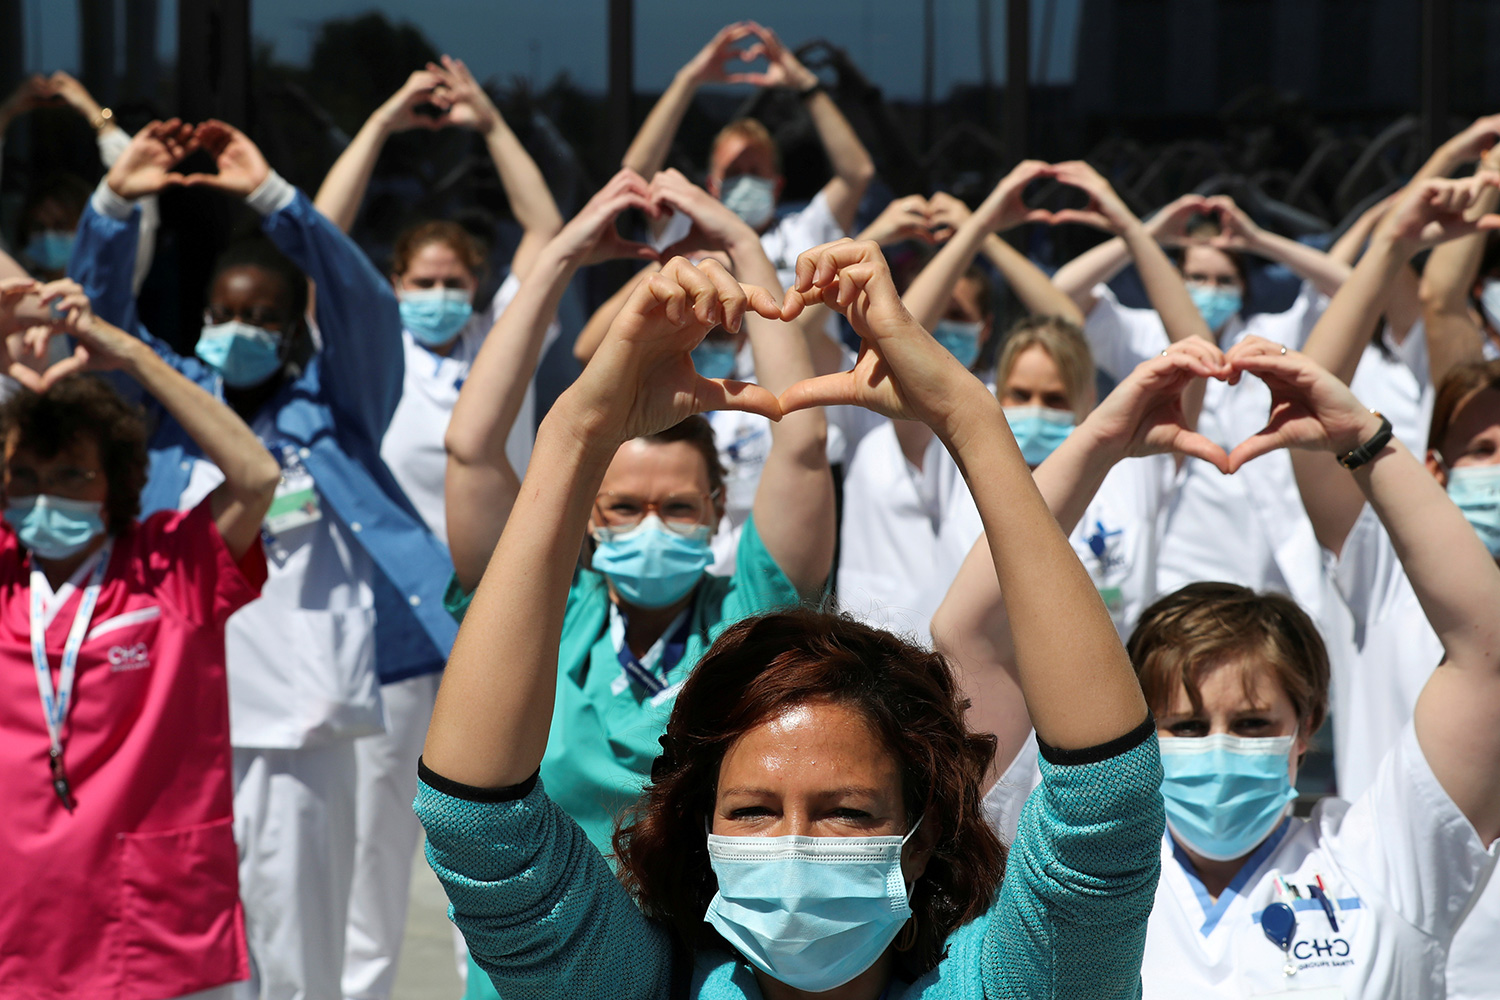 "Health-care workers, nurses, and doctors, protesting under the movement called ""Take Care of Care"" during the coronavirus crisis, at the MontLegia CHC Hospital in Liege, Belgium, on May 15, 2020. The photo shows a large number of health workers standing together and holding up a heart symbol above their heads. REUTERS/Yves Herman"